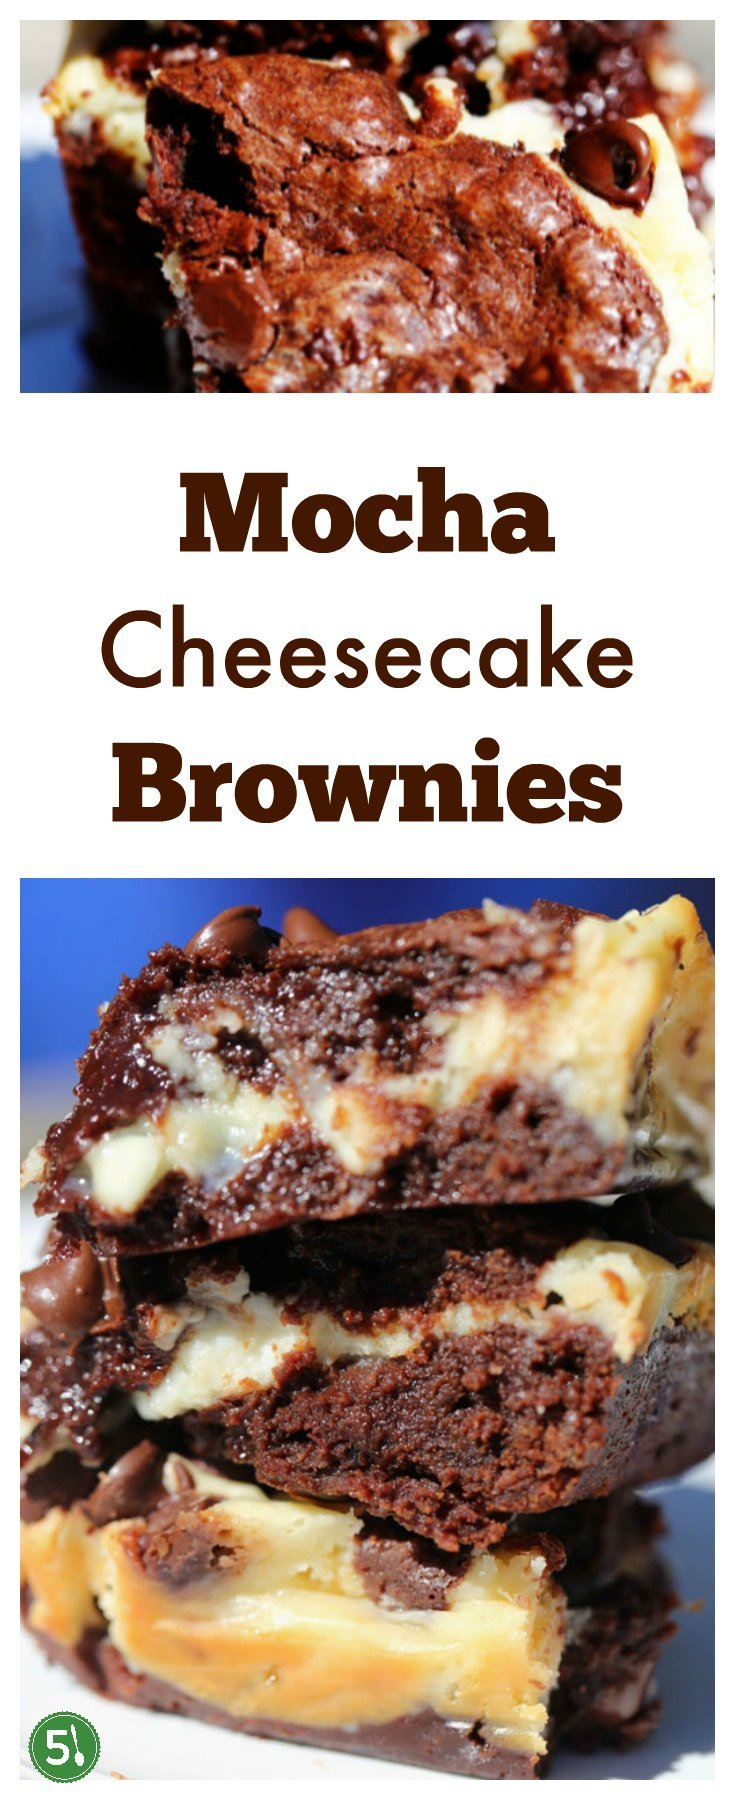 Mocha cheesecake brownies with cream cheese, chocolate chips, coffee, and chopped chocolate is just about one of the best desserts ever.